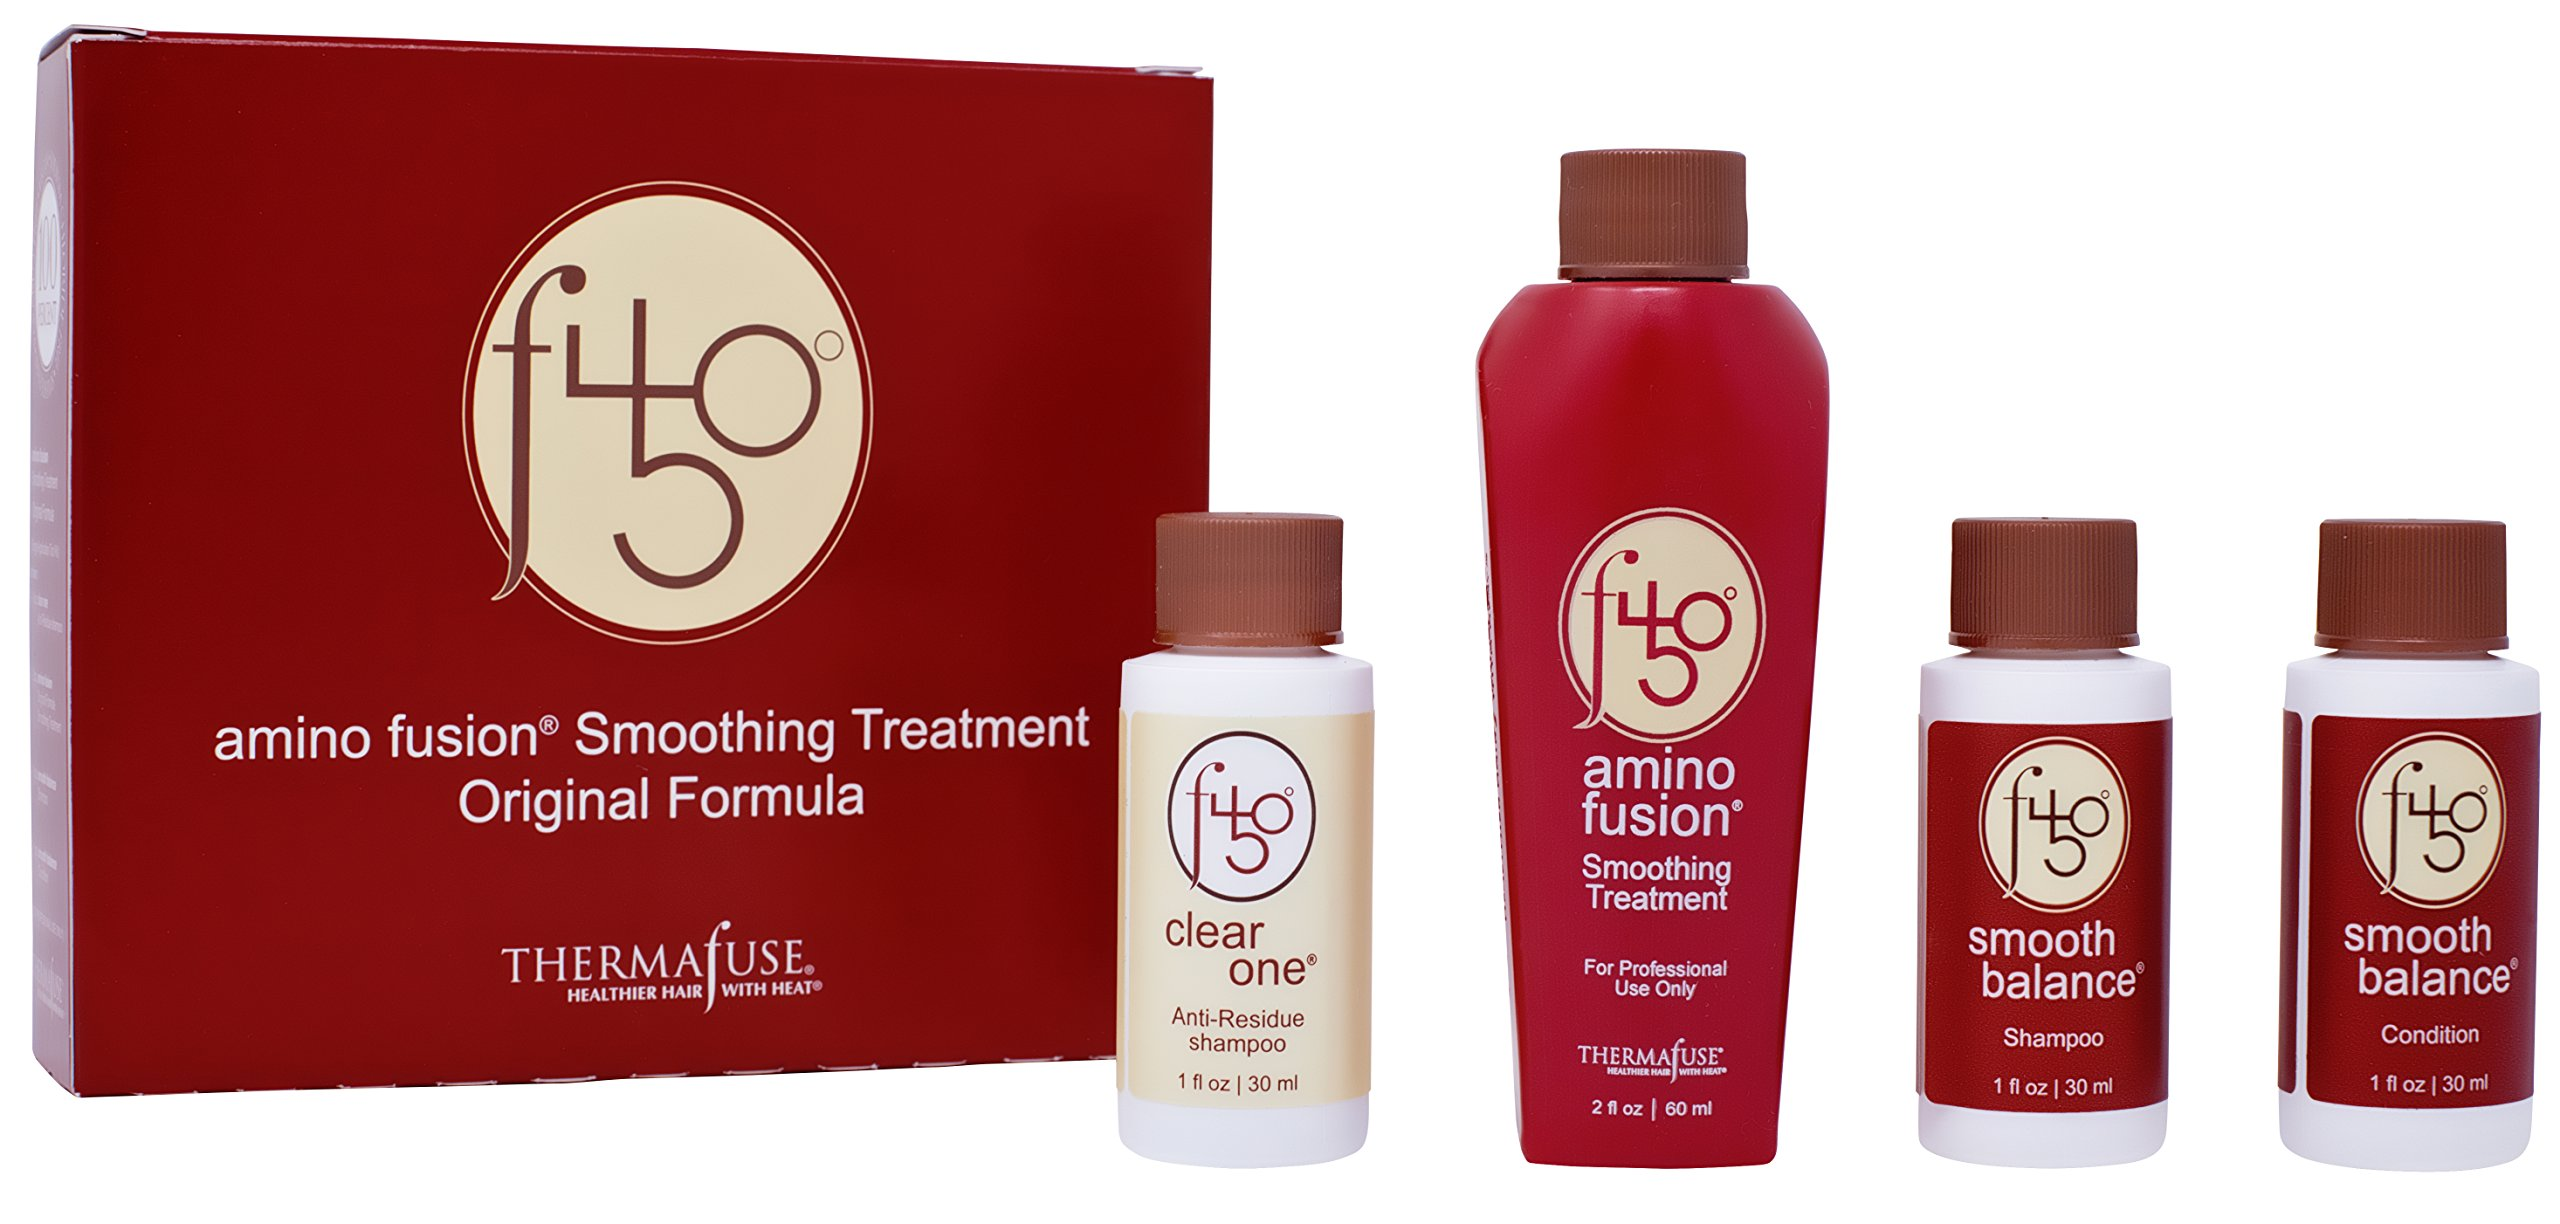 Thermafuse f450 Amino Fusion Smoothing Treatment. Formaldehyde Free Treatment. Repairs and Straightens Up To 12 Weeks on Natural, Normal, Coarse, Wavy, Thick, African and Curly Hair Types